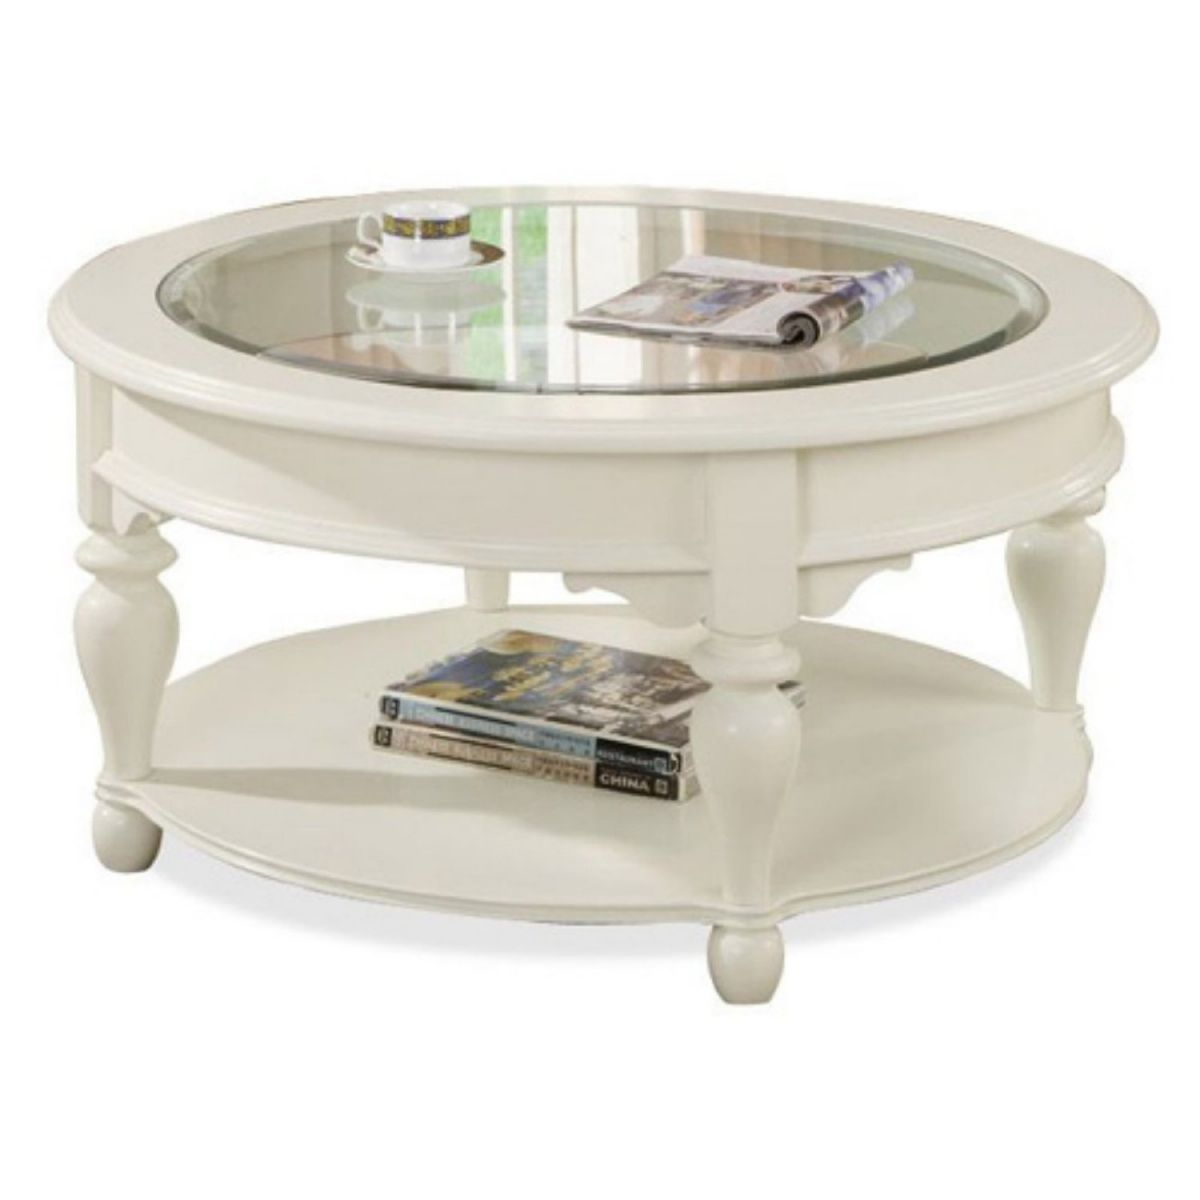 Shabby Chic Round White Coffee Table Idea With Glass